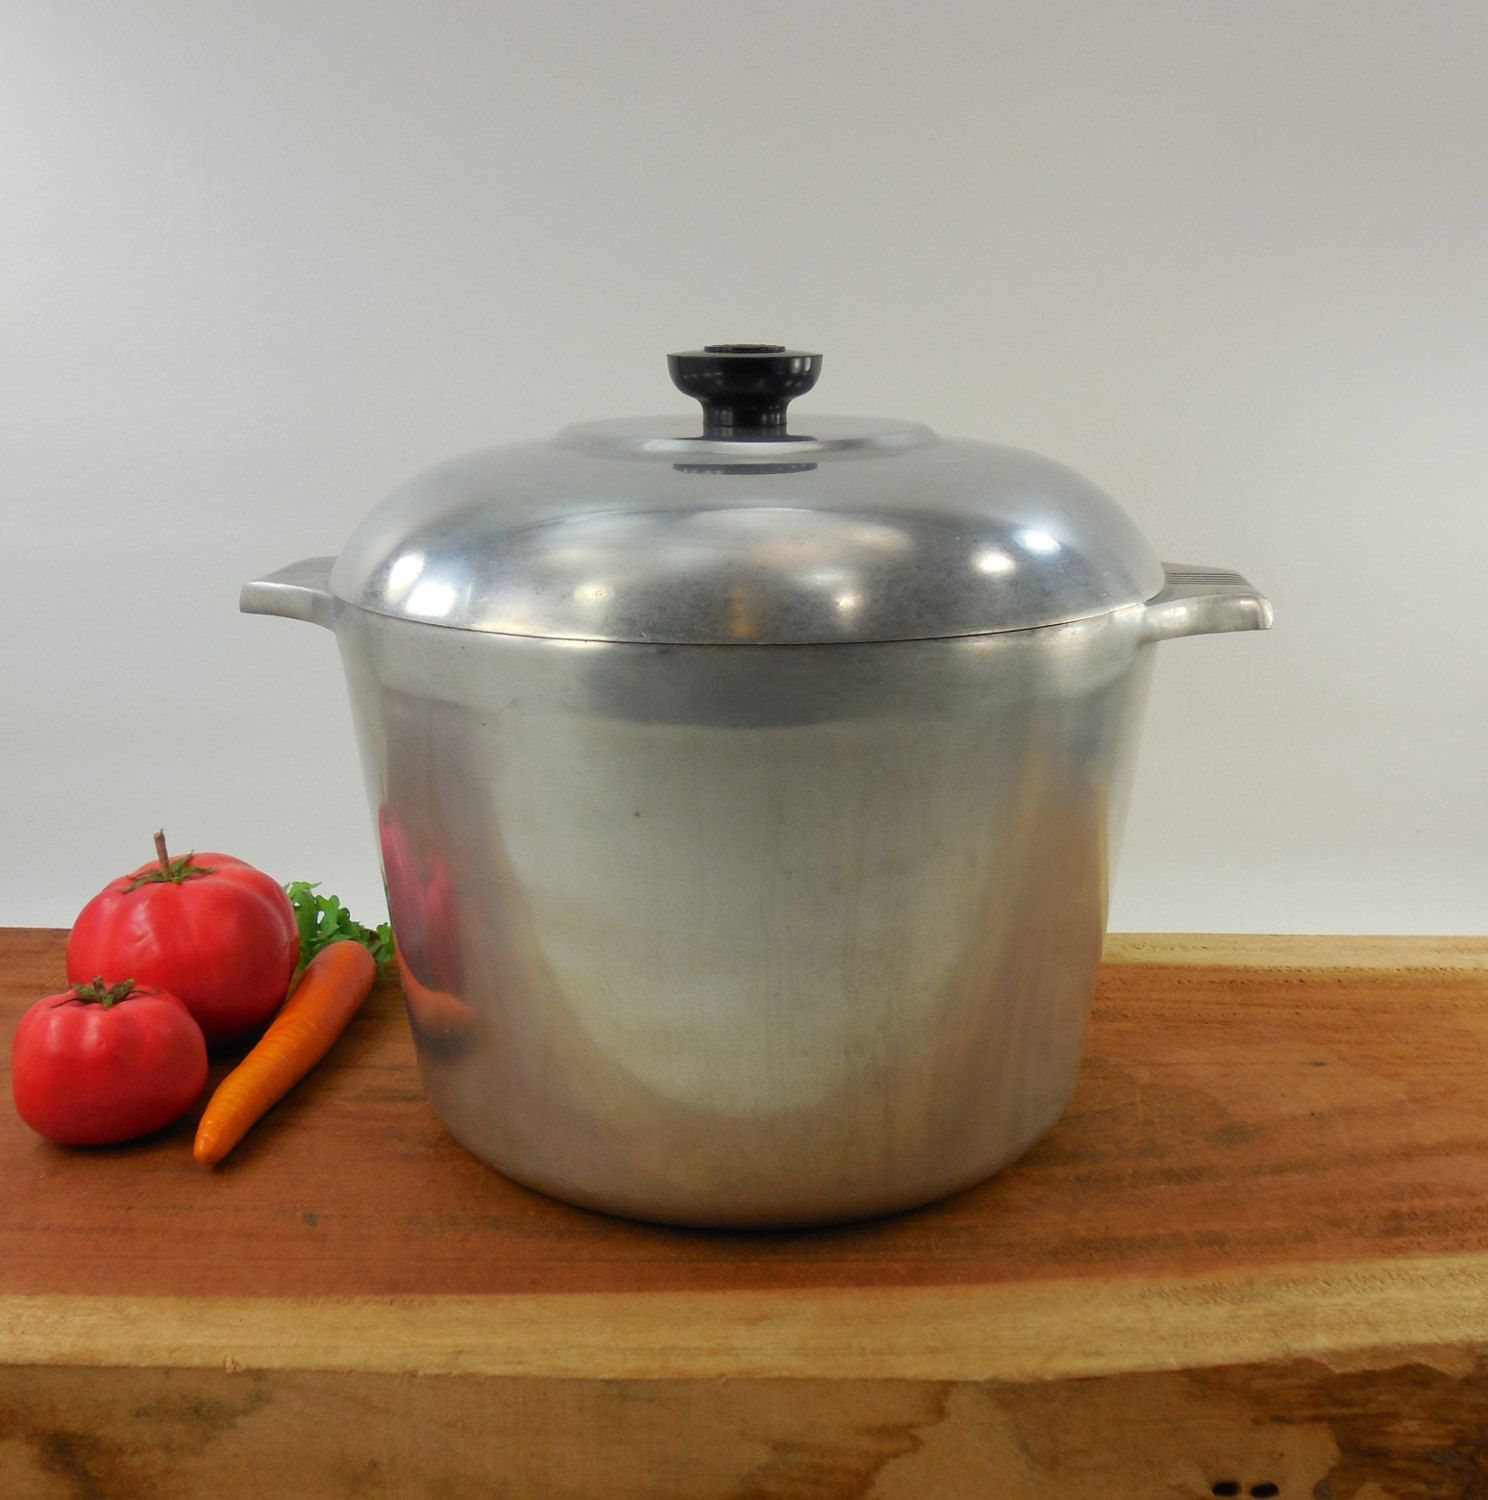 Wagner ware magnalite 4738 p round roaster dutch oven stock pot 8 qt quart by oldetymestore on etsy